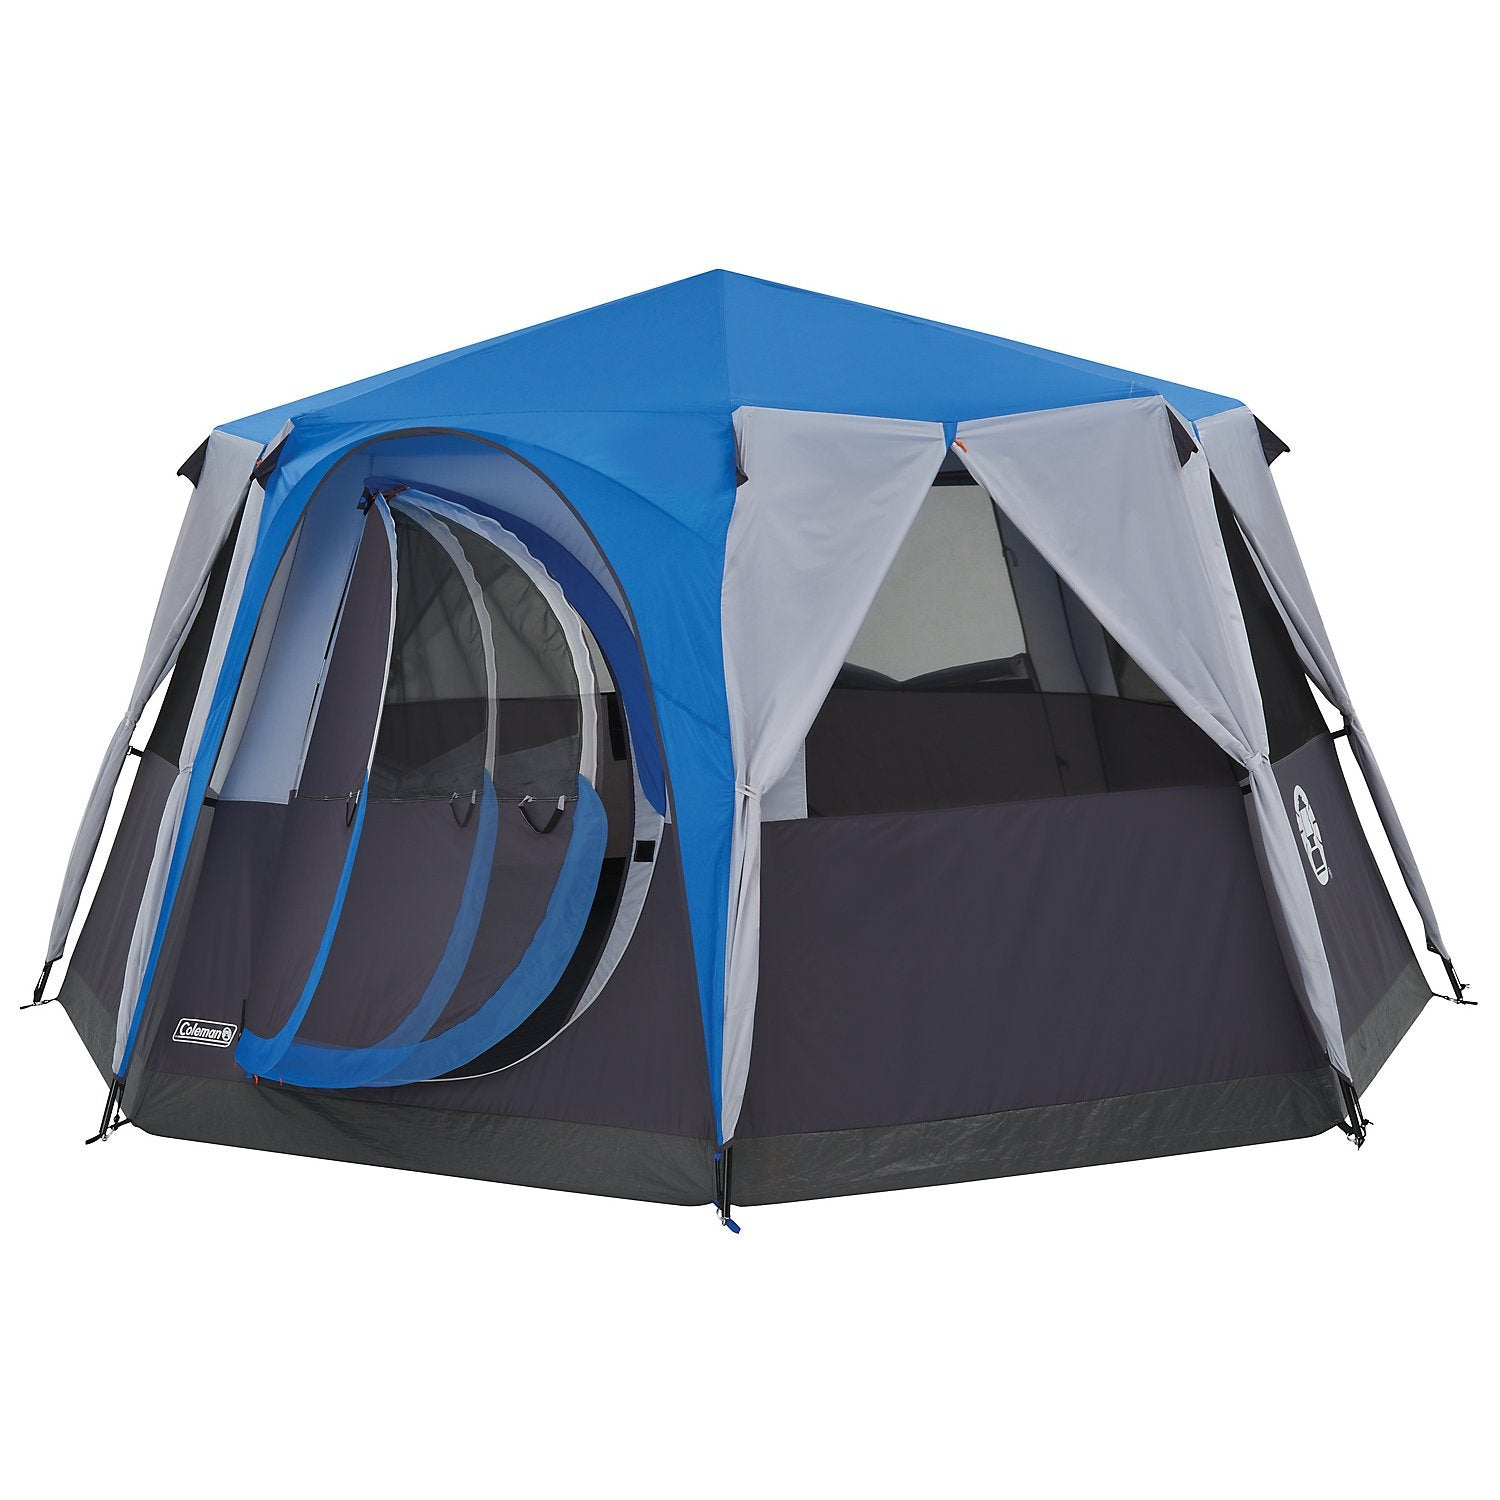 Coleman Cortes Octagon 8 Person Family Tent with Wheeled Carry Bag, 2000 mm Water Column, Waterproof, Easy Set up